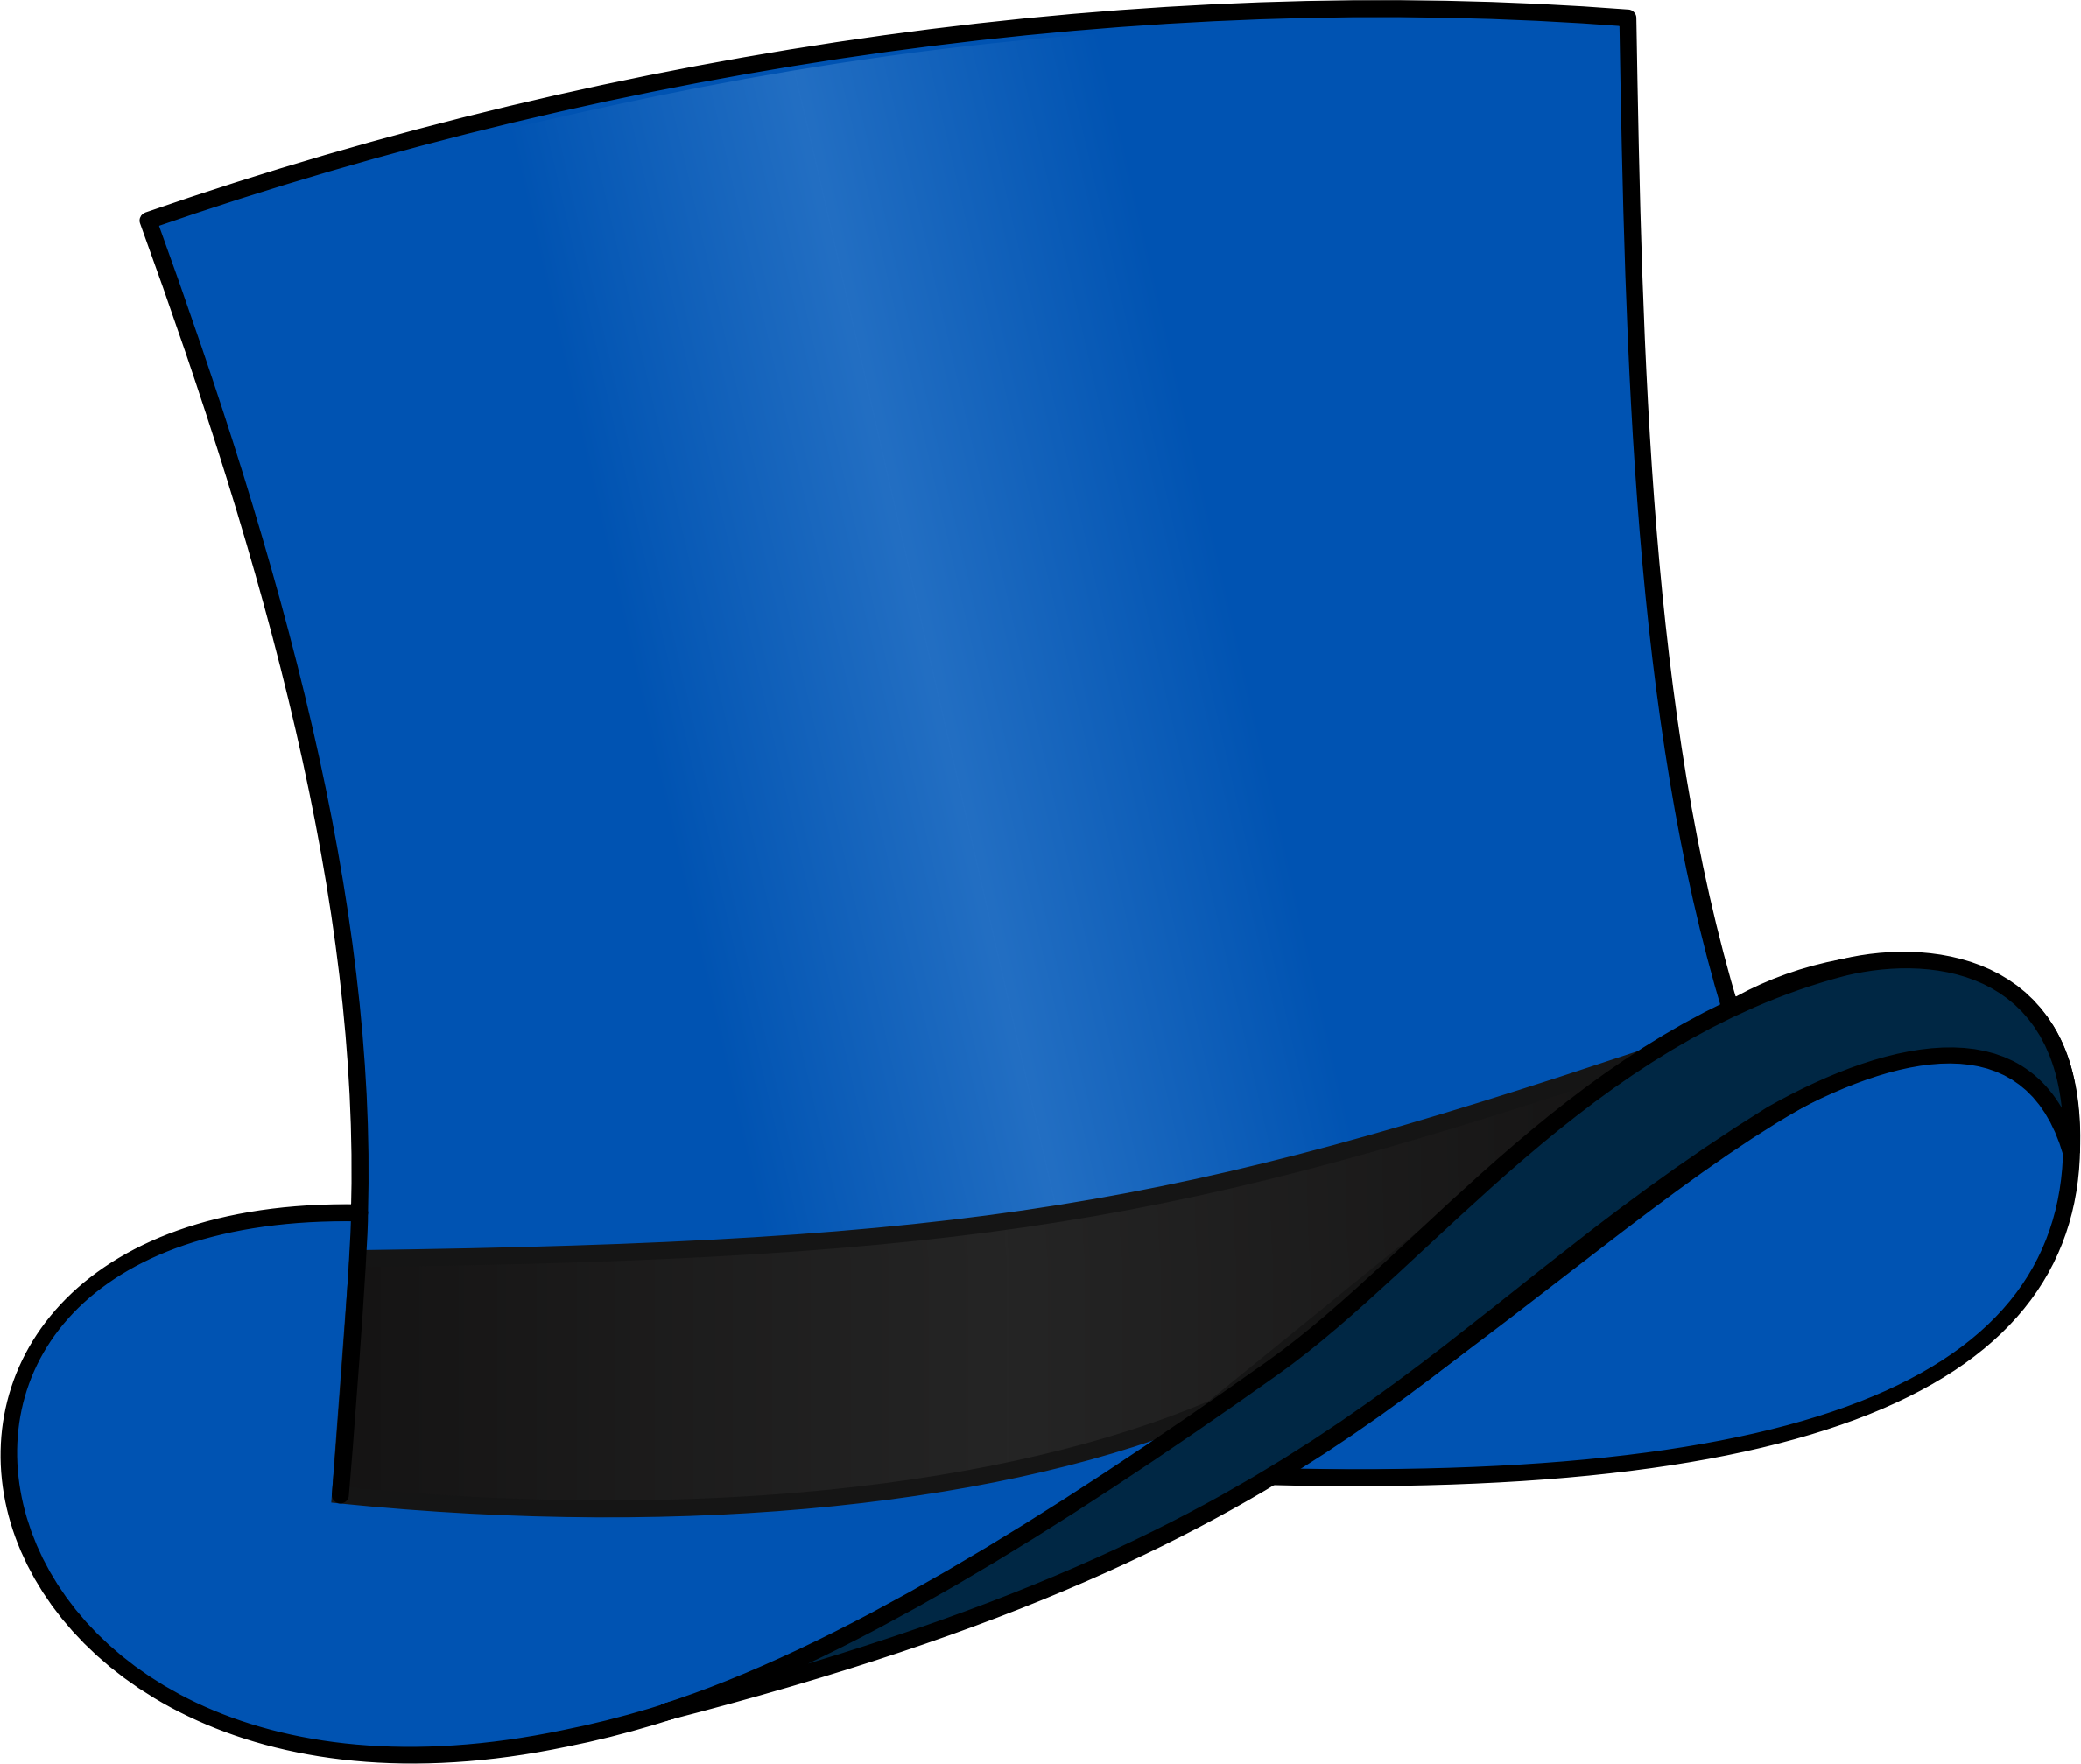 Top hat blue by cschreuders